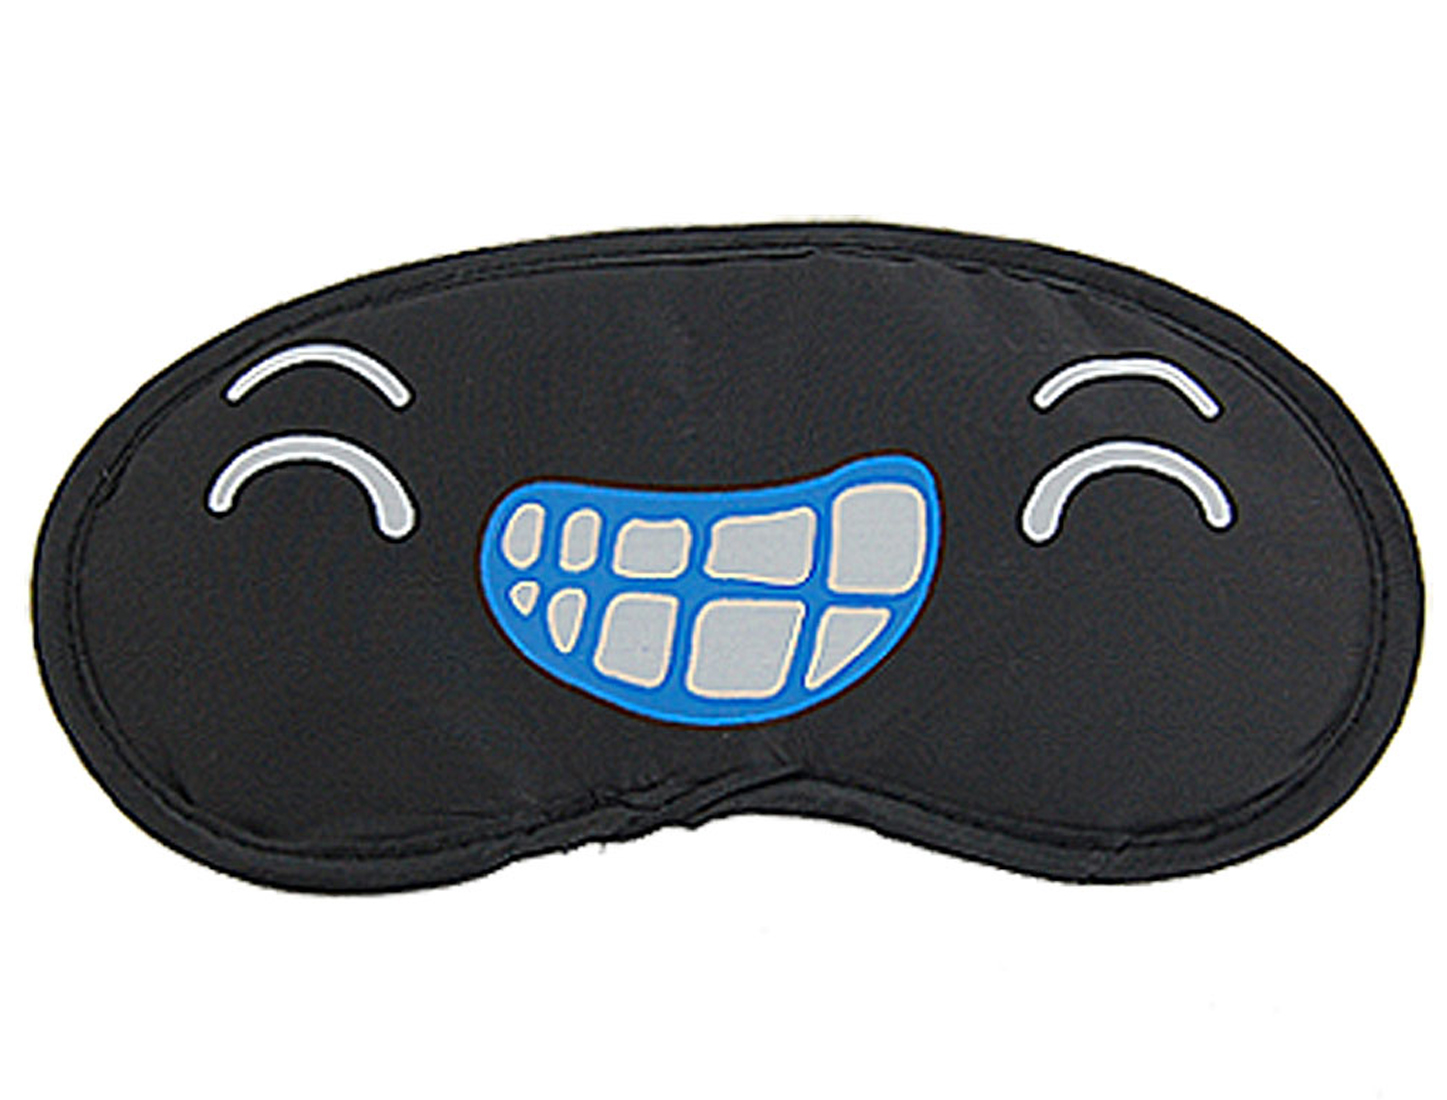 2 Pcs Cartoon Grins Eyes Pattern Sleep Aid Eyeshade Eye Mask Blindfold